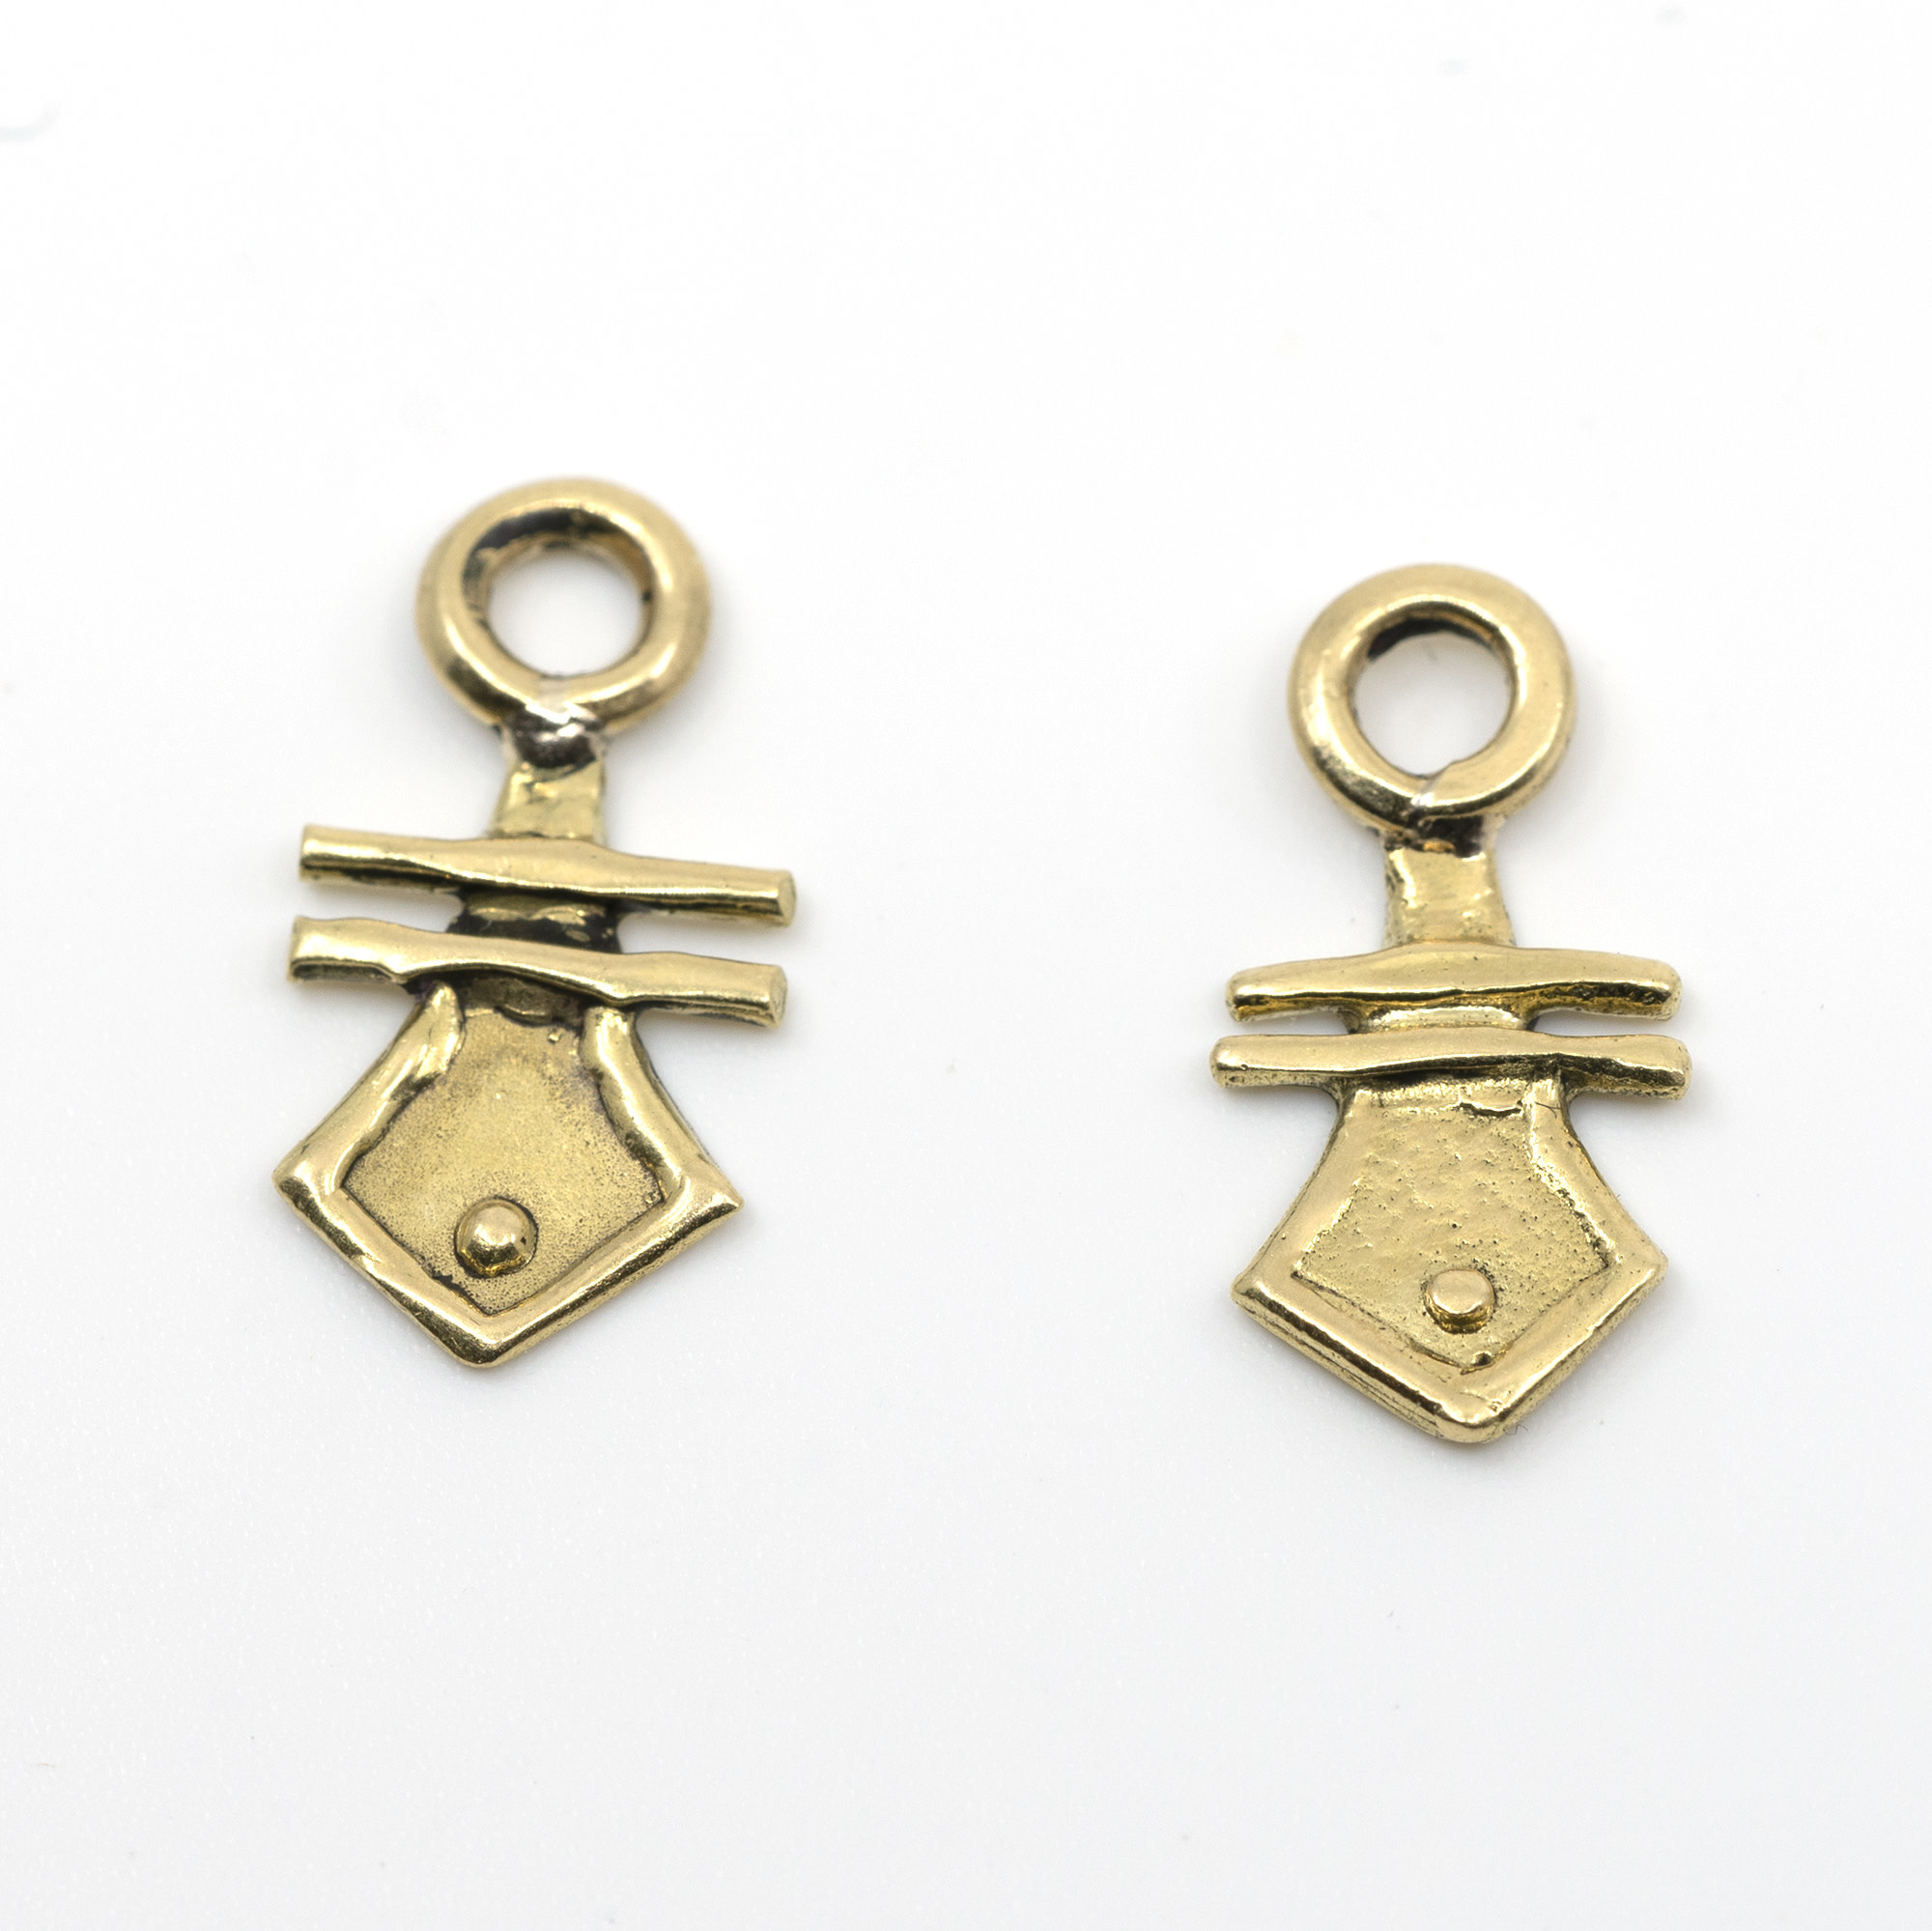 10K Gold Earring Charms